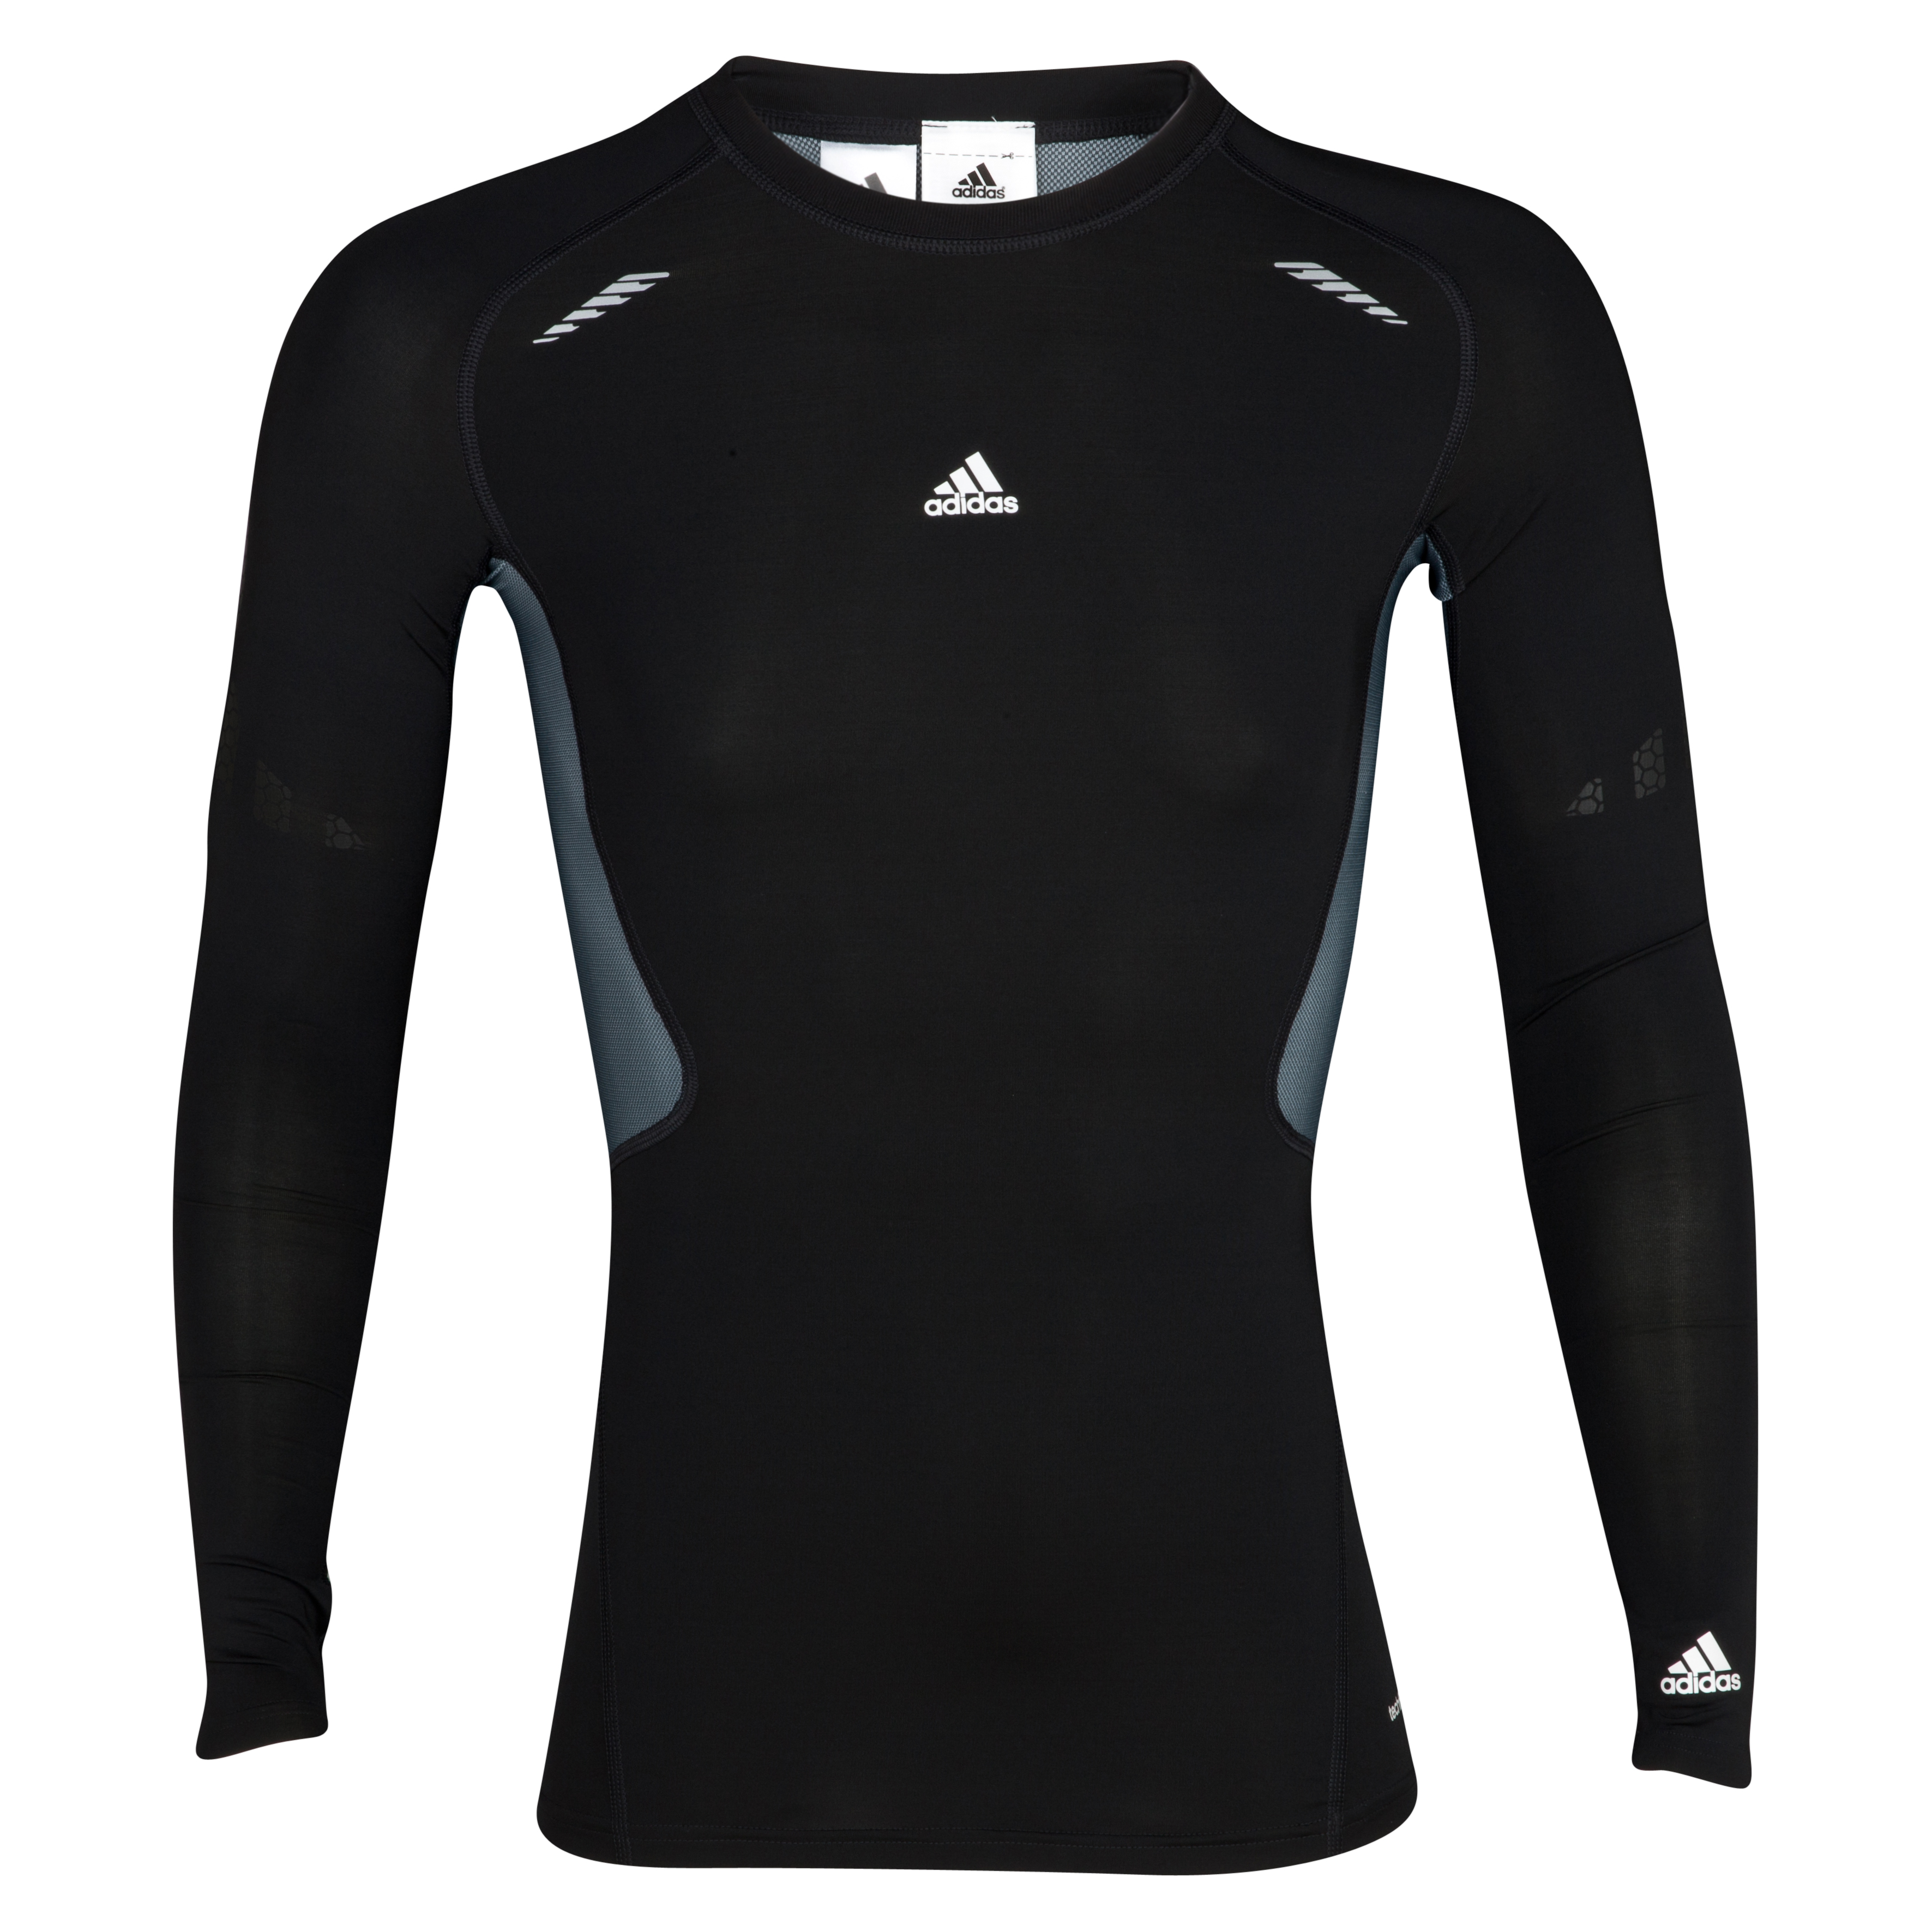 adidas TechFit Preperation Baselayer Top - Long Sleeve - Black